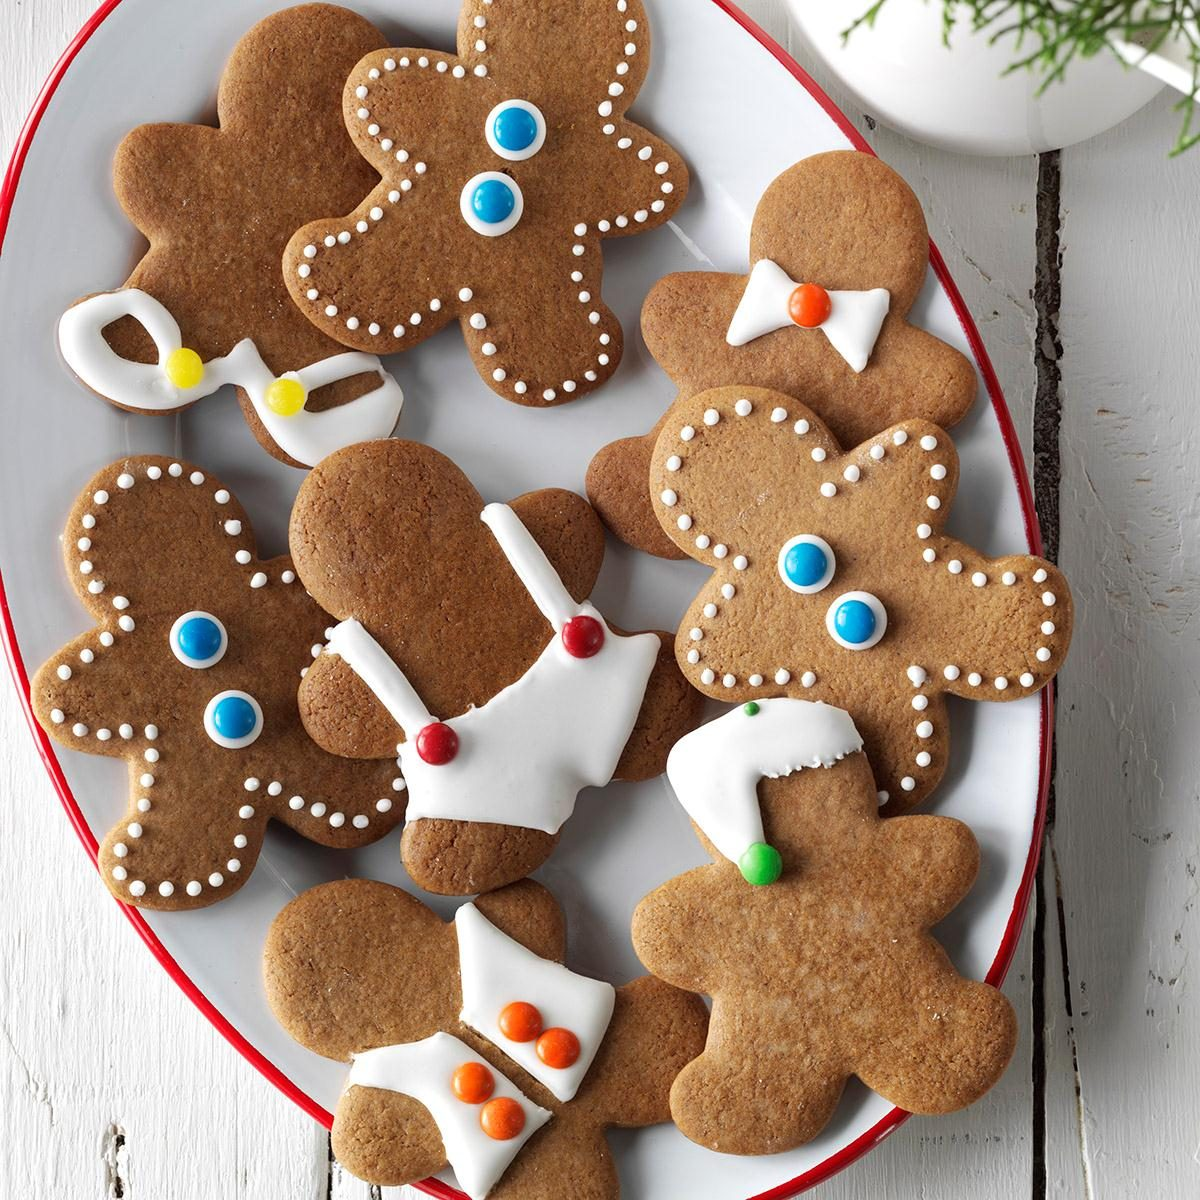 Making These Gingerbread Boys Will Really Take You Back